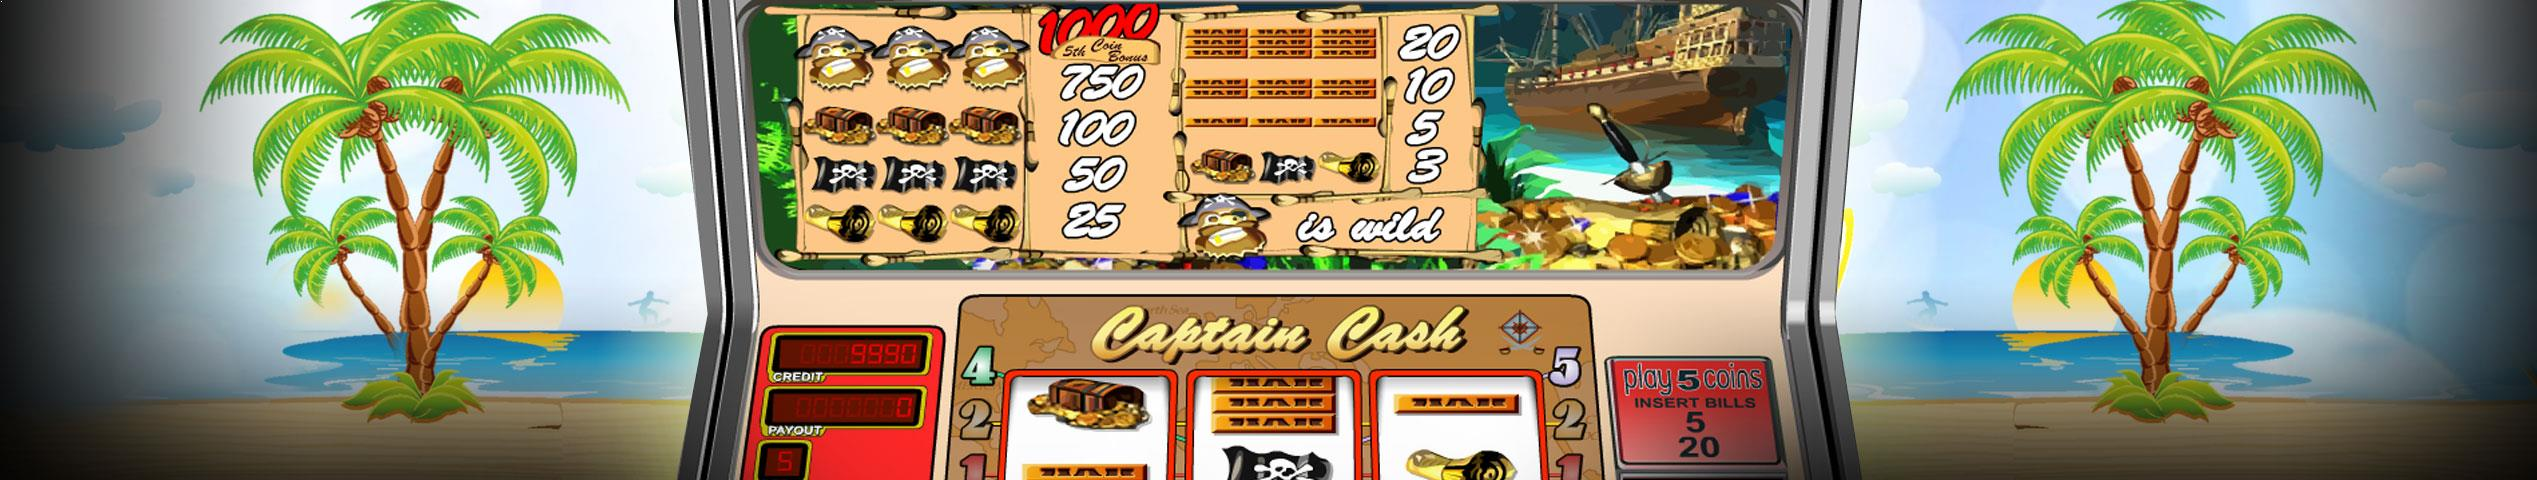 Captain Cash Multa Baft jocuri slot slider Betsoft